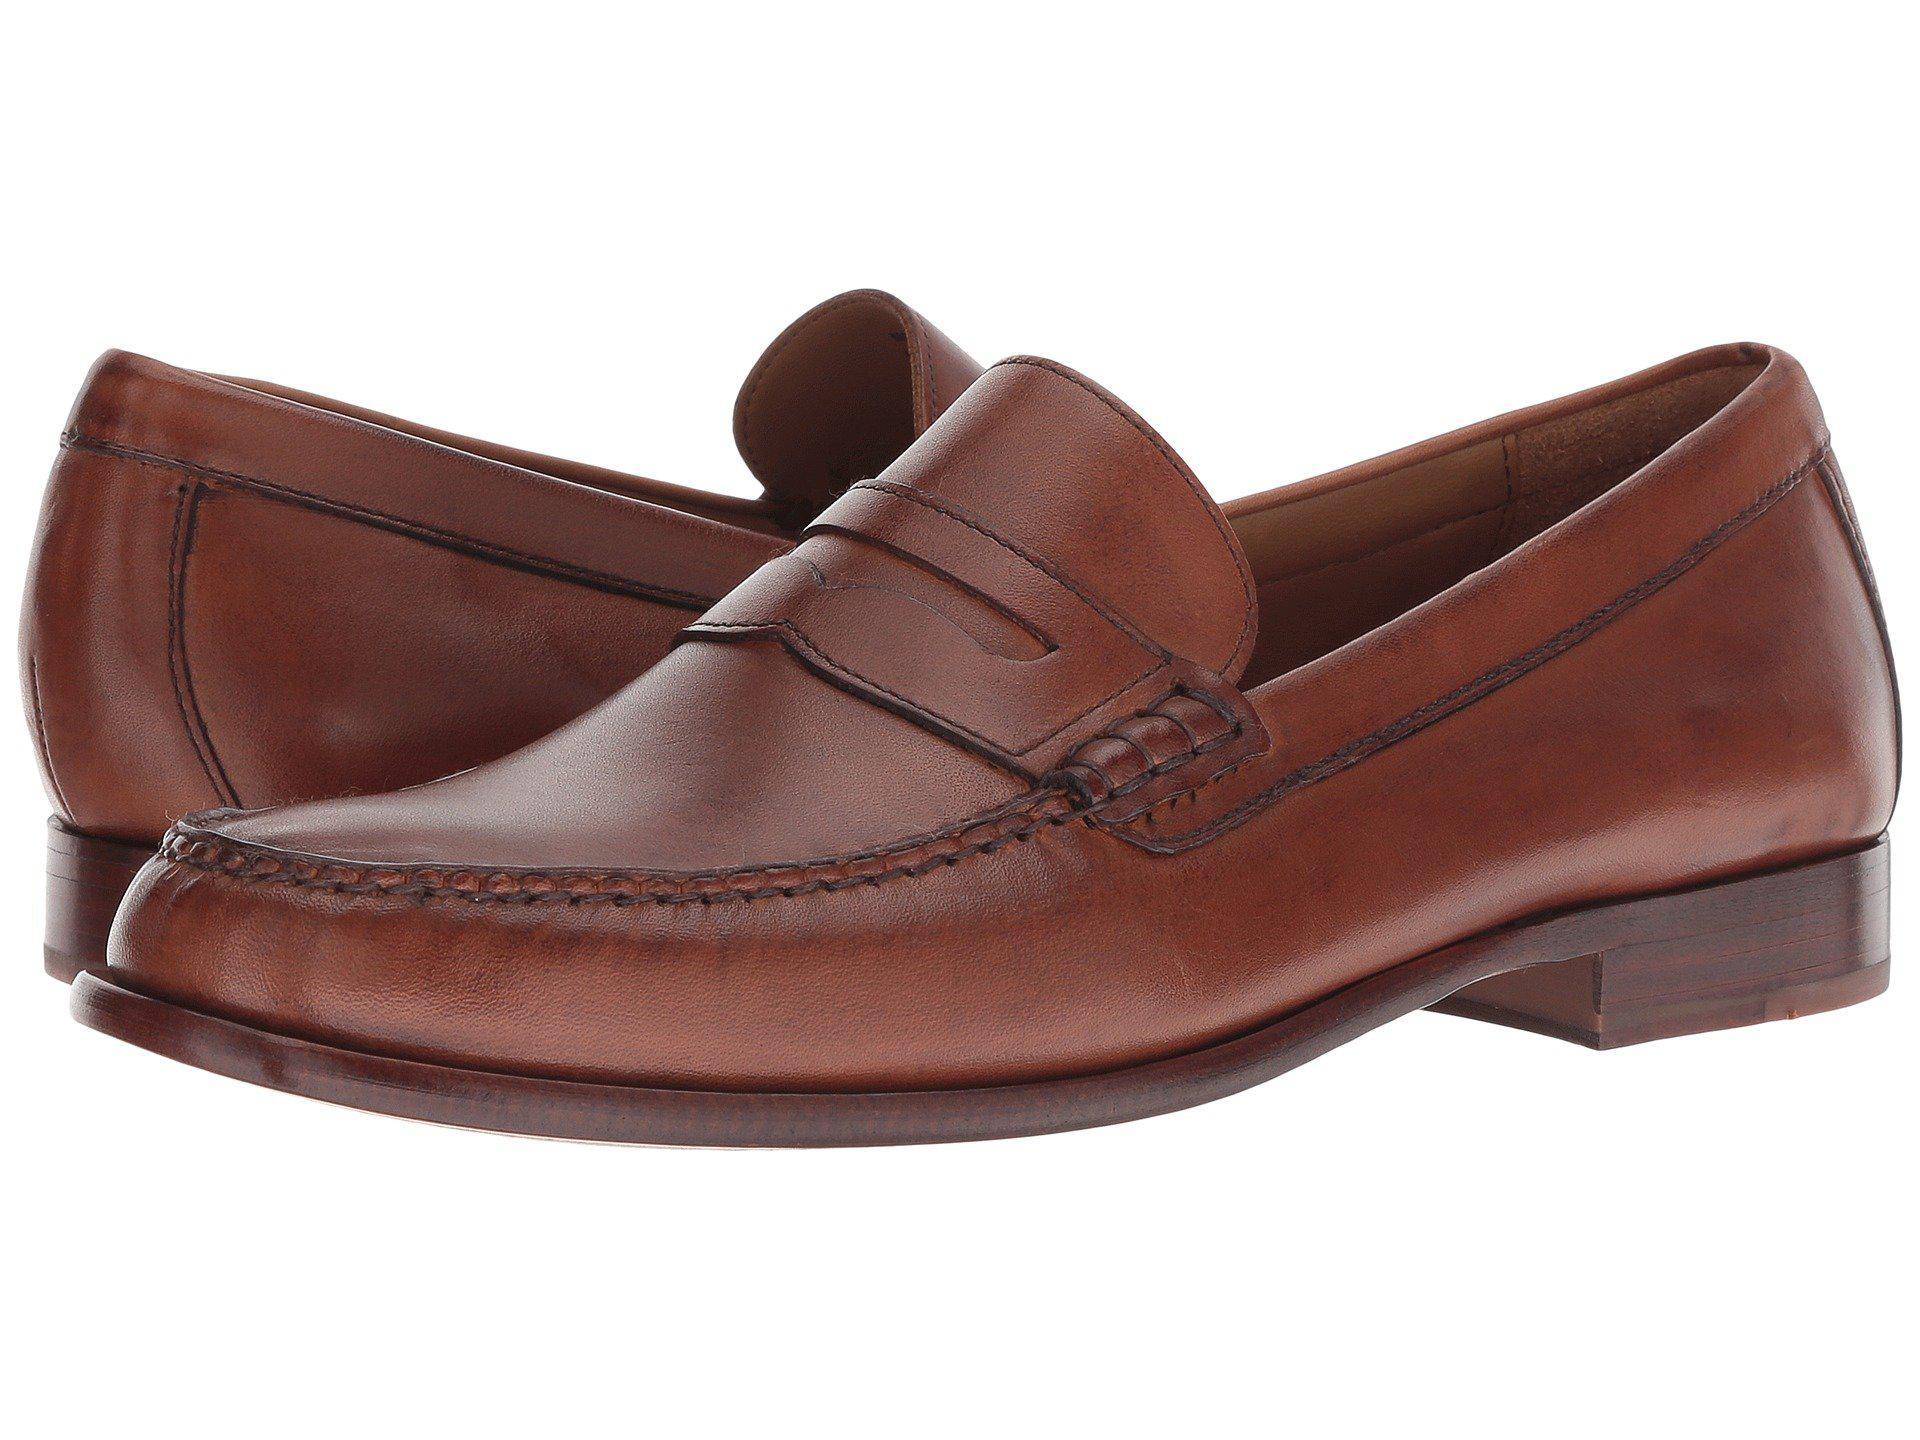 b0ba48c5007 Lyst - Cole Haan Handsewn Penny Loafer (british Tan Handstain) Men s ...